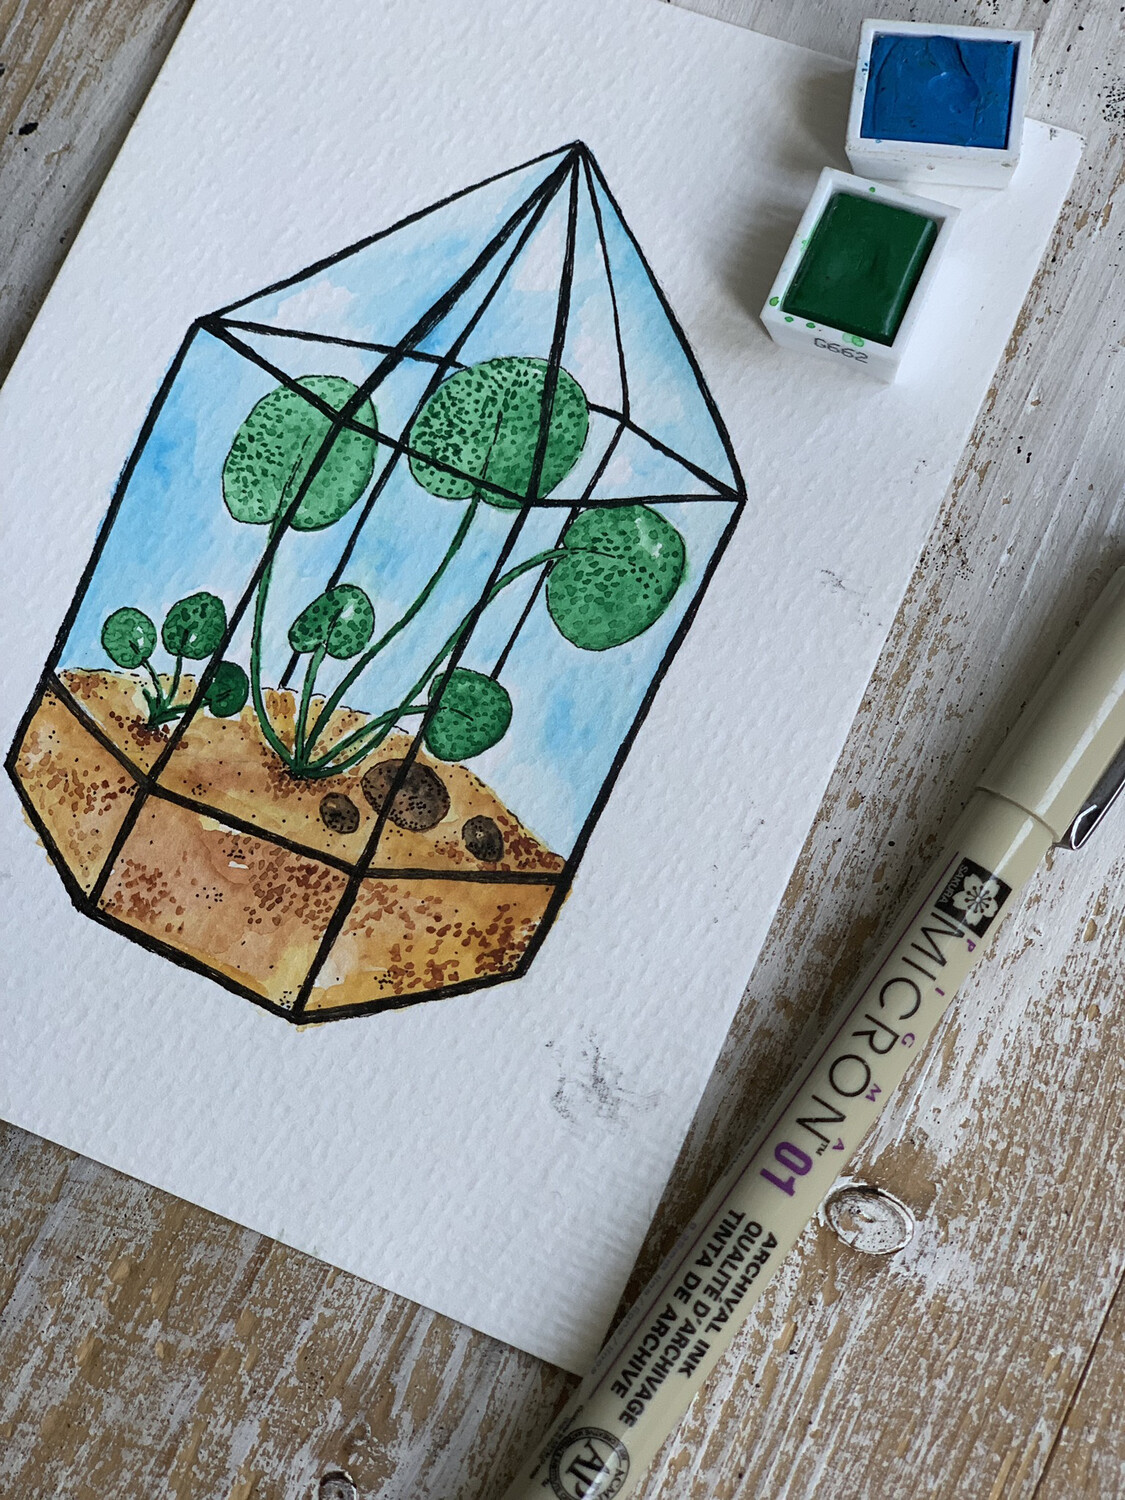 Inside The Green House II - Limited Edition